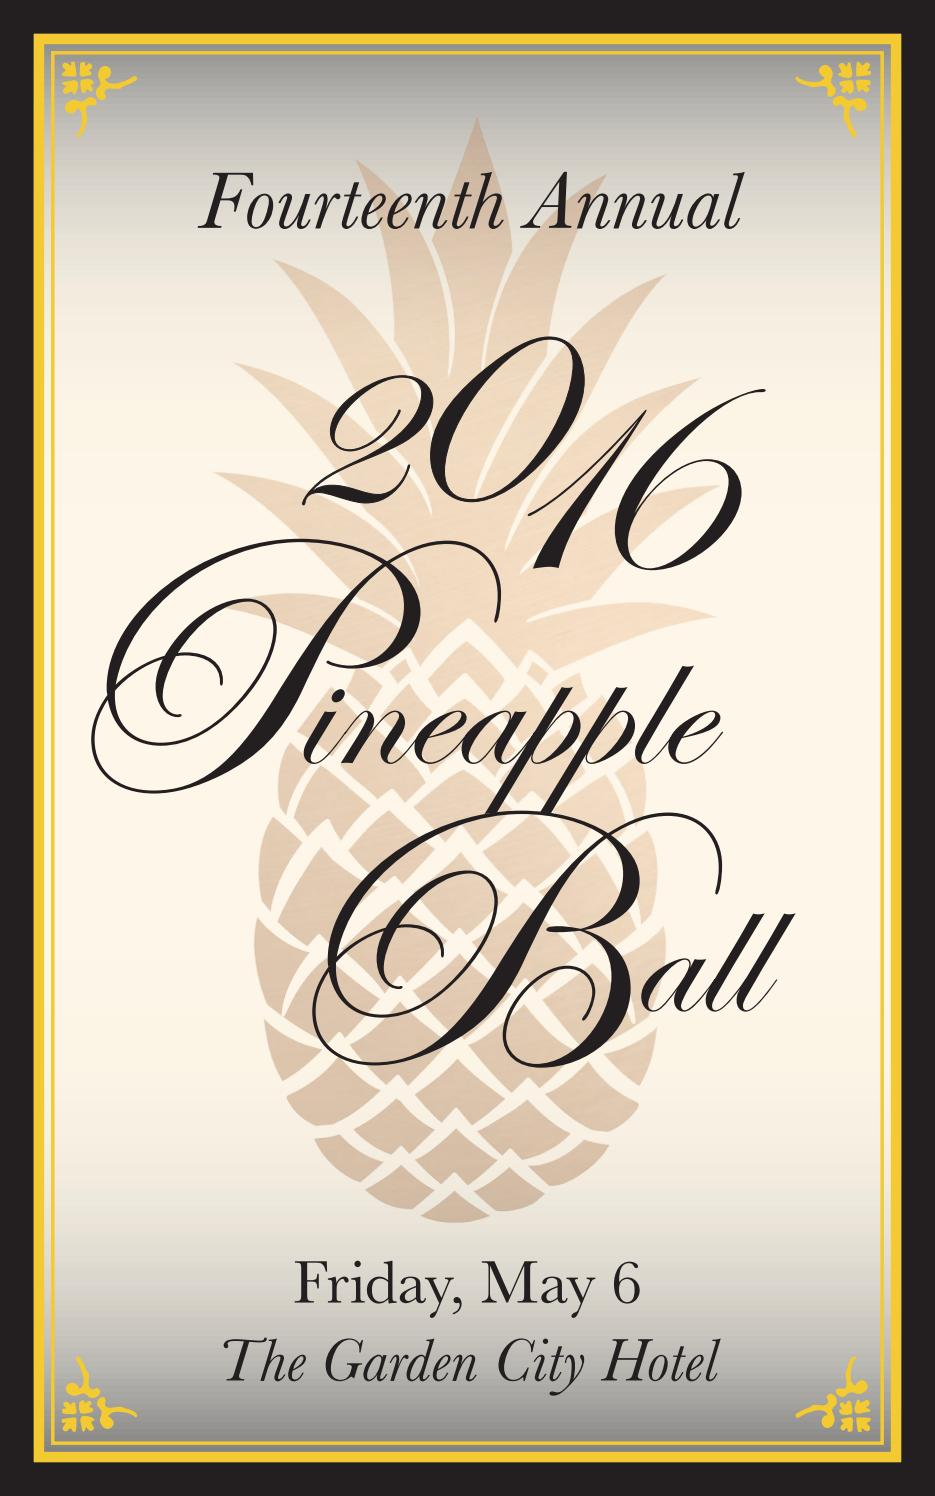 fourteenth annual pineapple ball garden city chamber of commerce 2016 by kerry goldberg issuu - Fairchild Funeral Home Garden City